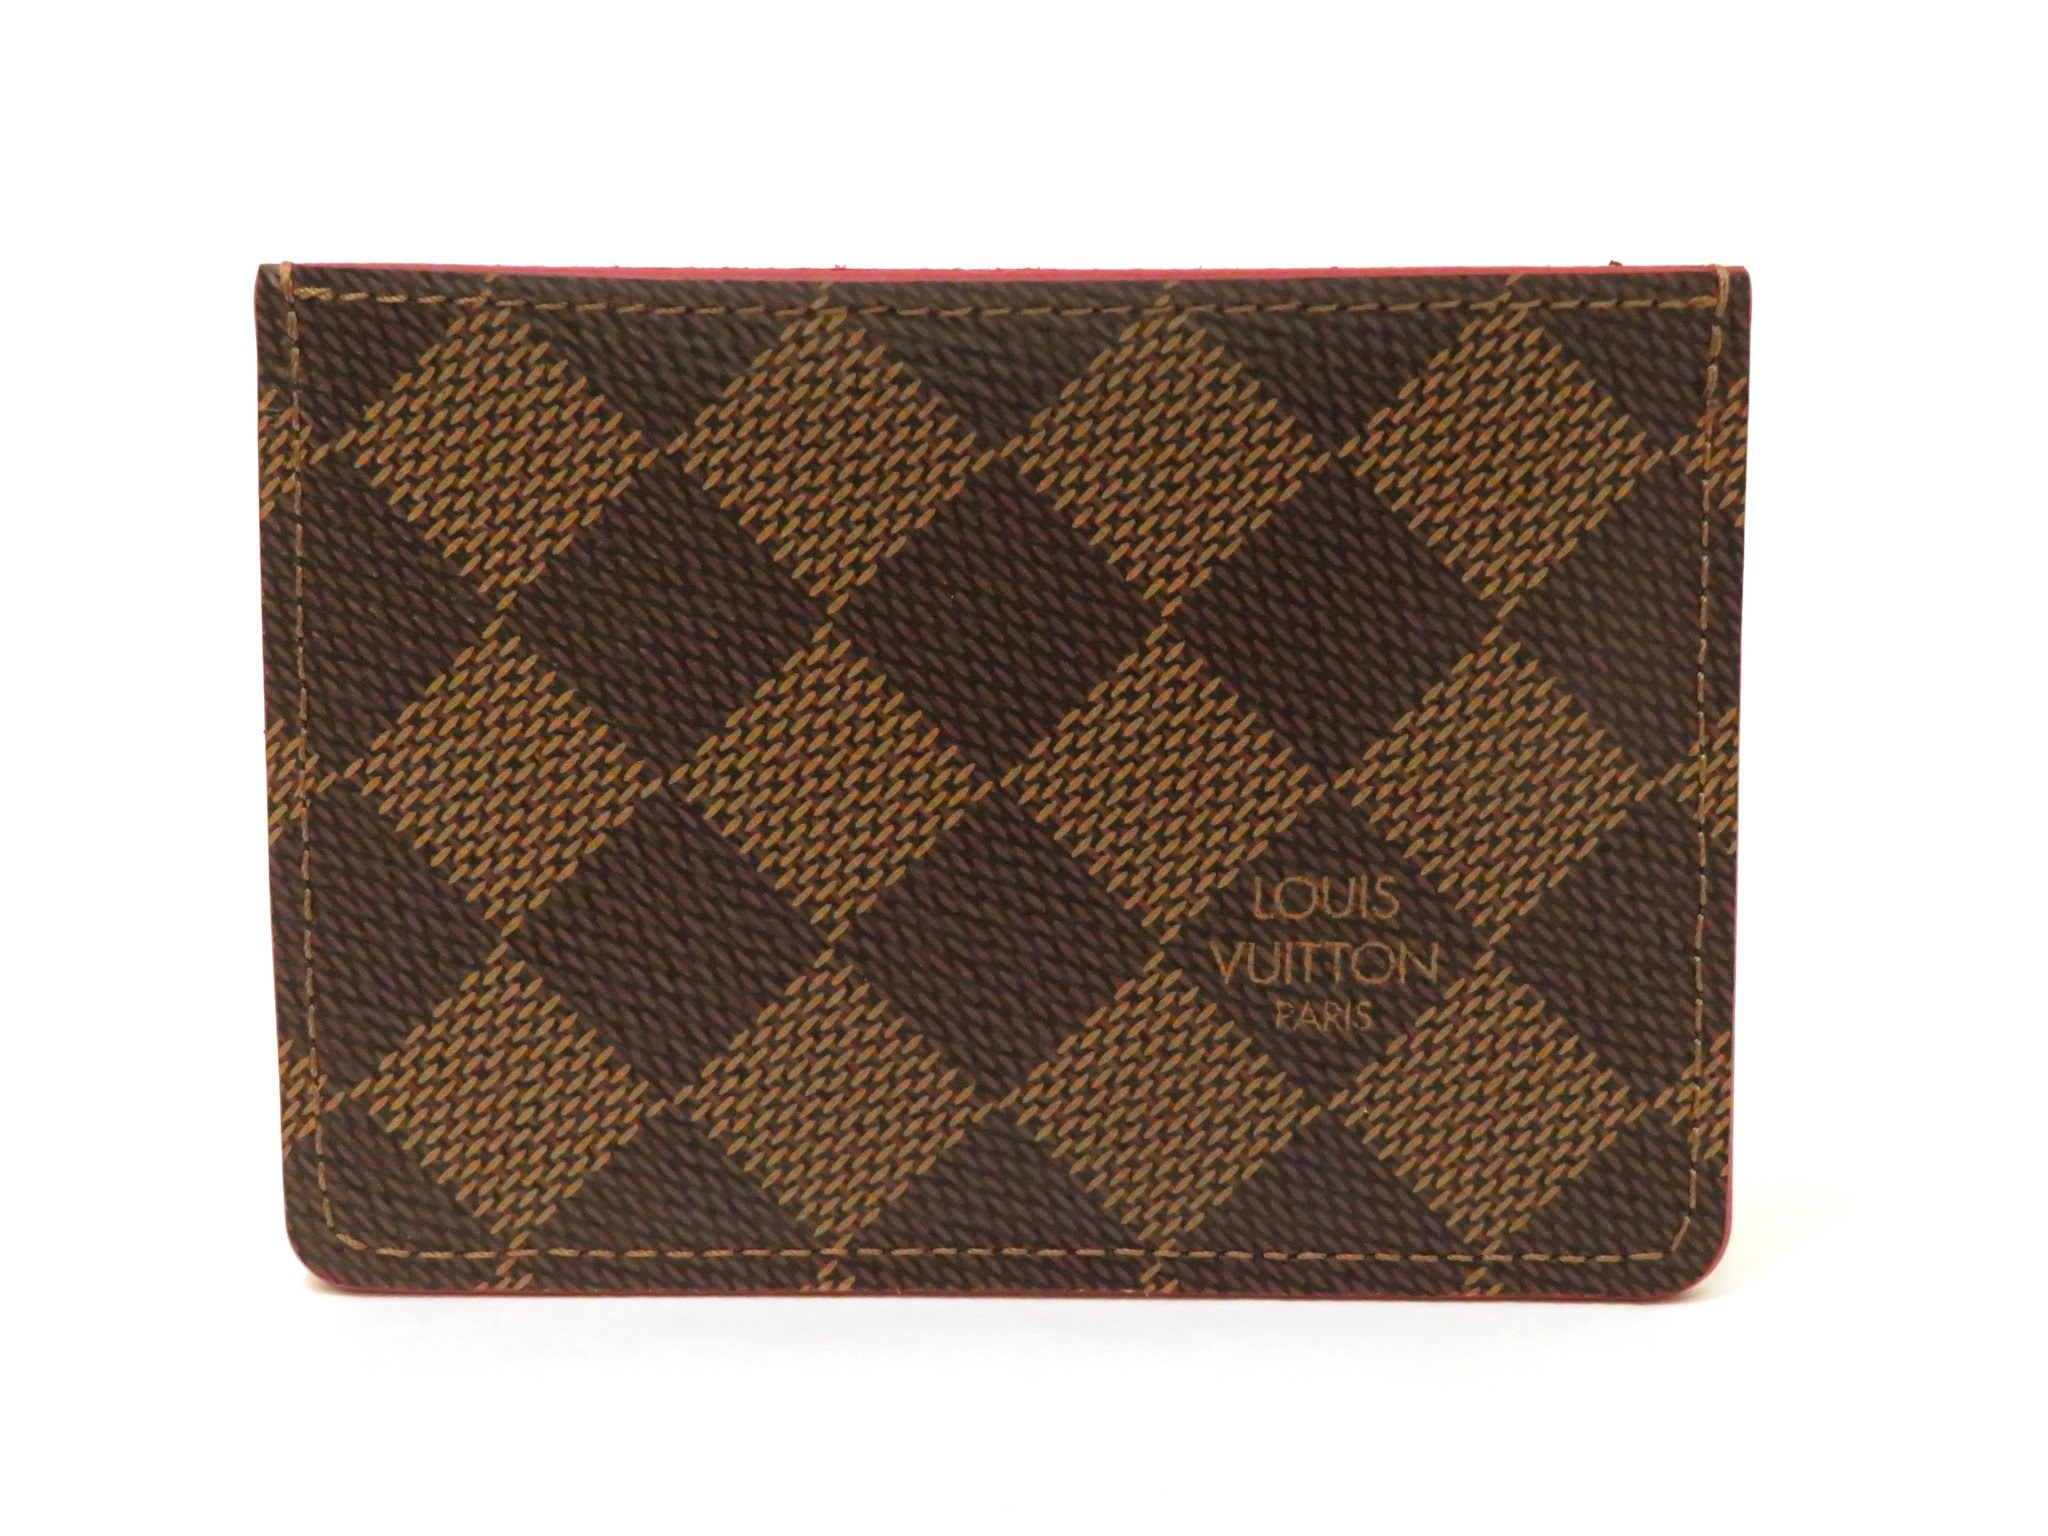 LOUIS VUITTON ルイヴィトン カードケース ポルトカルトカイサダミエスリーズ エベヌ N61219 【472】MY image number 1